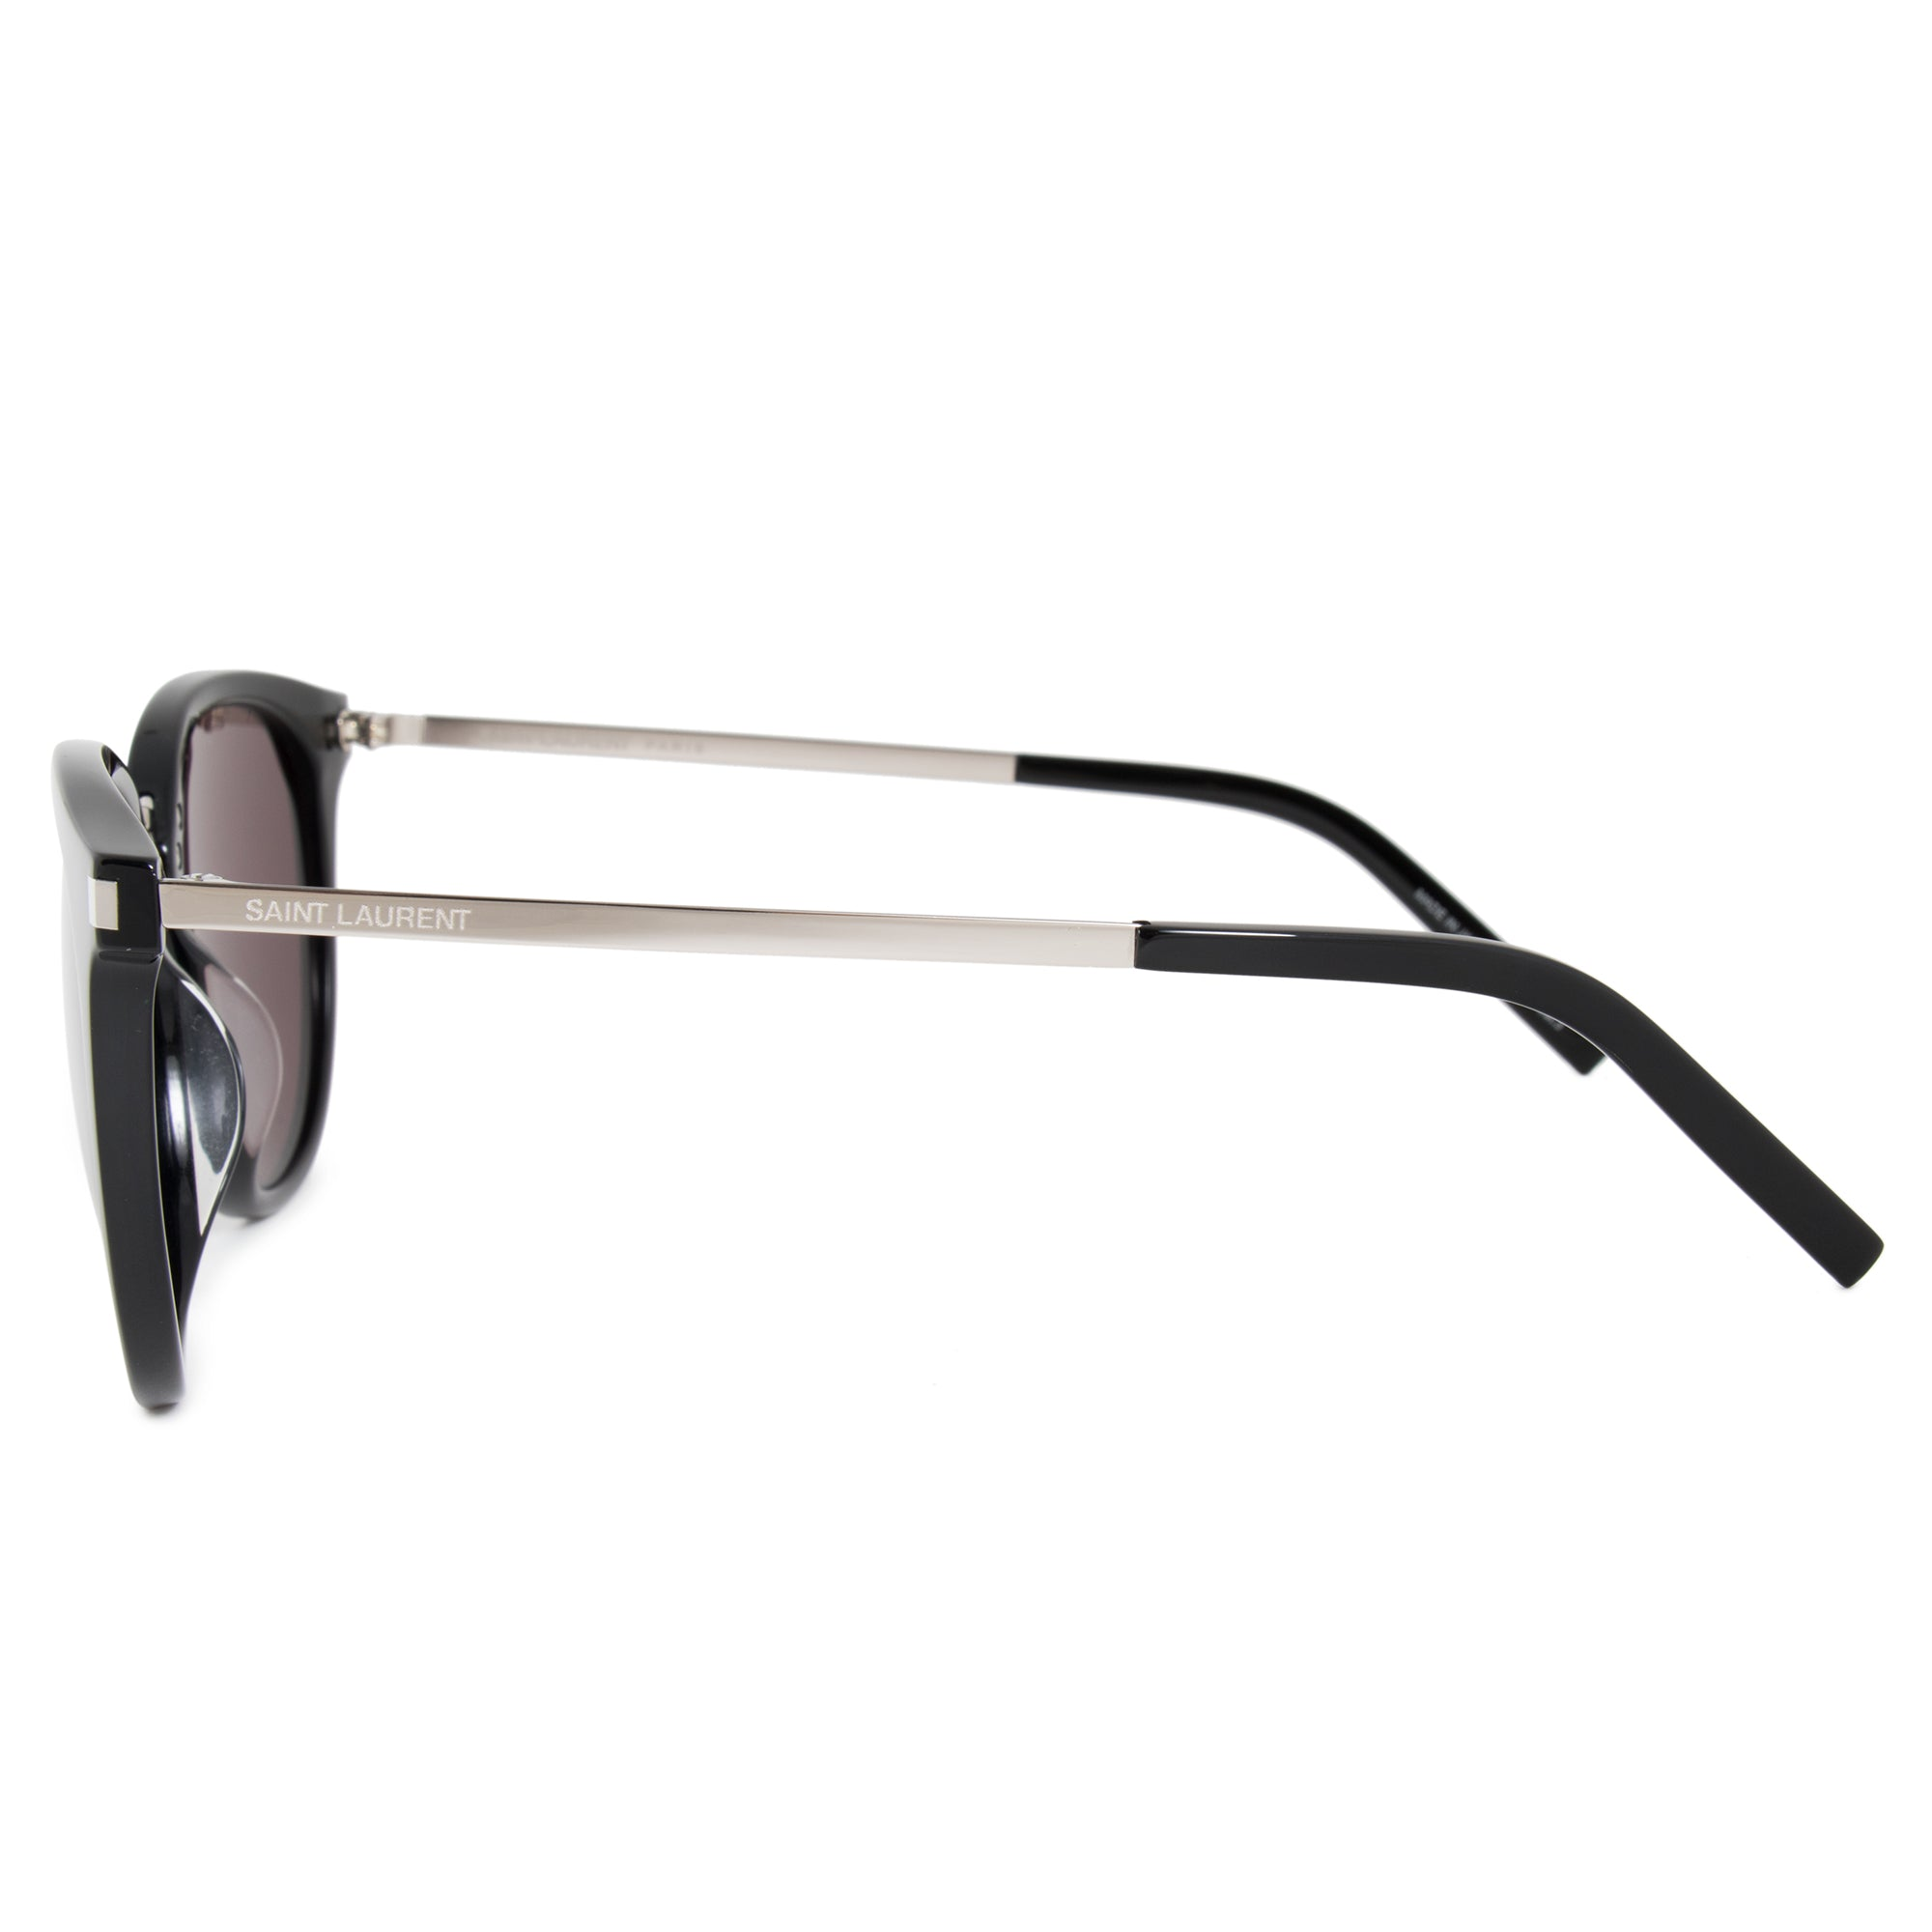 Saint Laurent Saint Laurent SL 130/K COMBI 001 55 Cat Eye Sunglasses